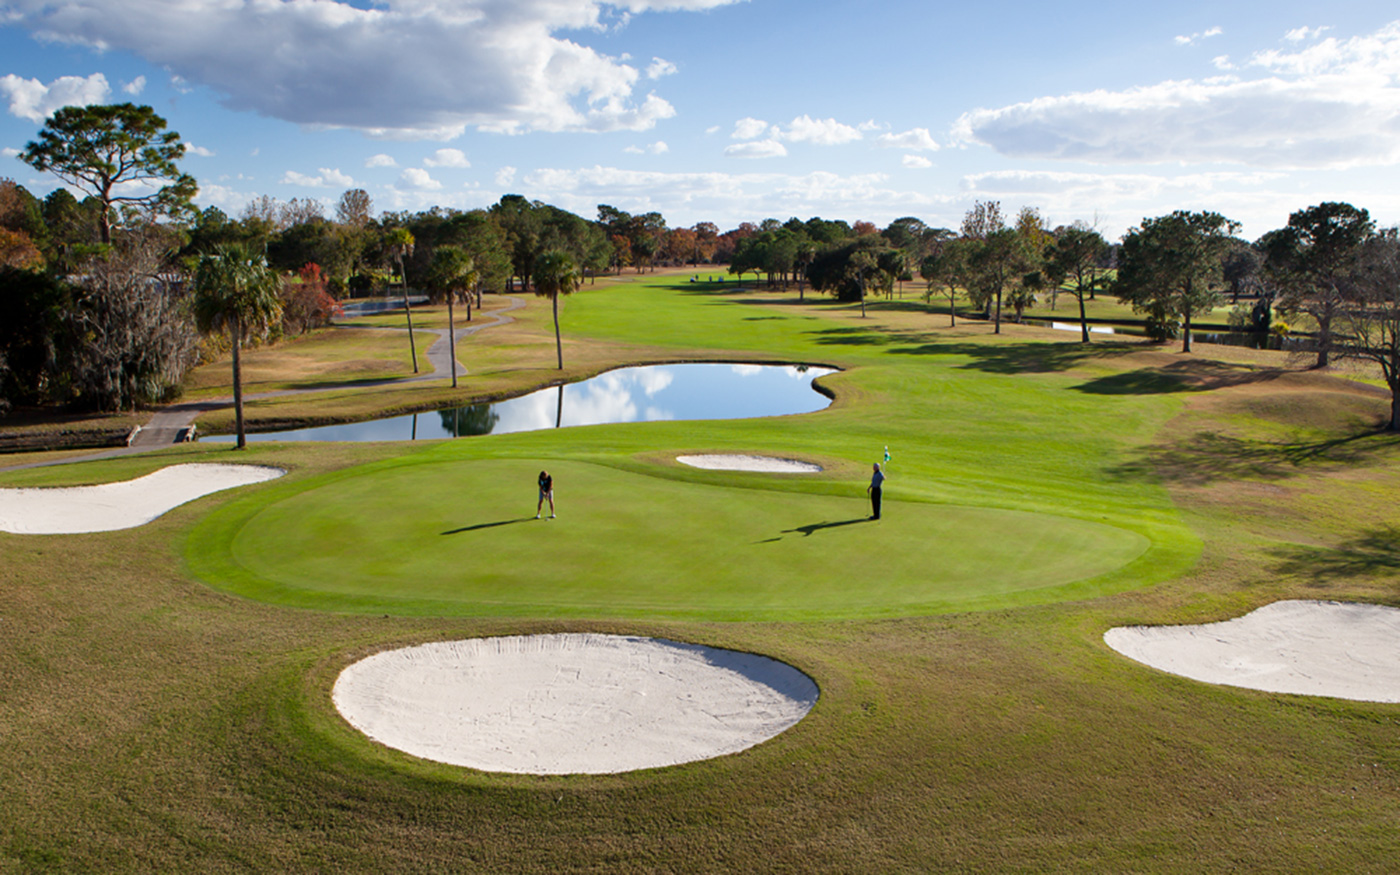 Crystal River Golf Course